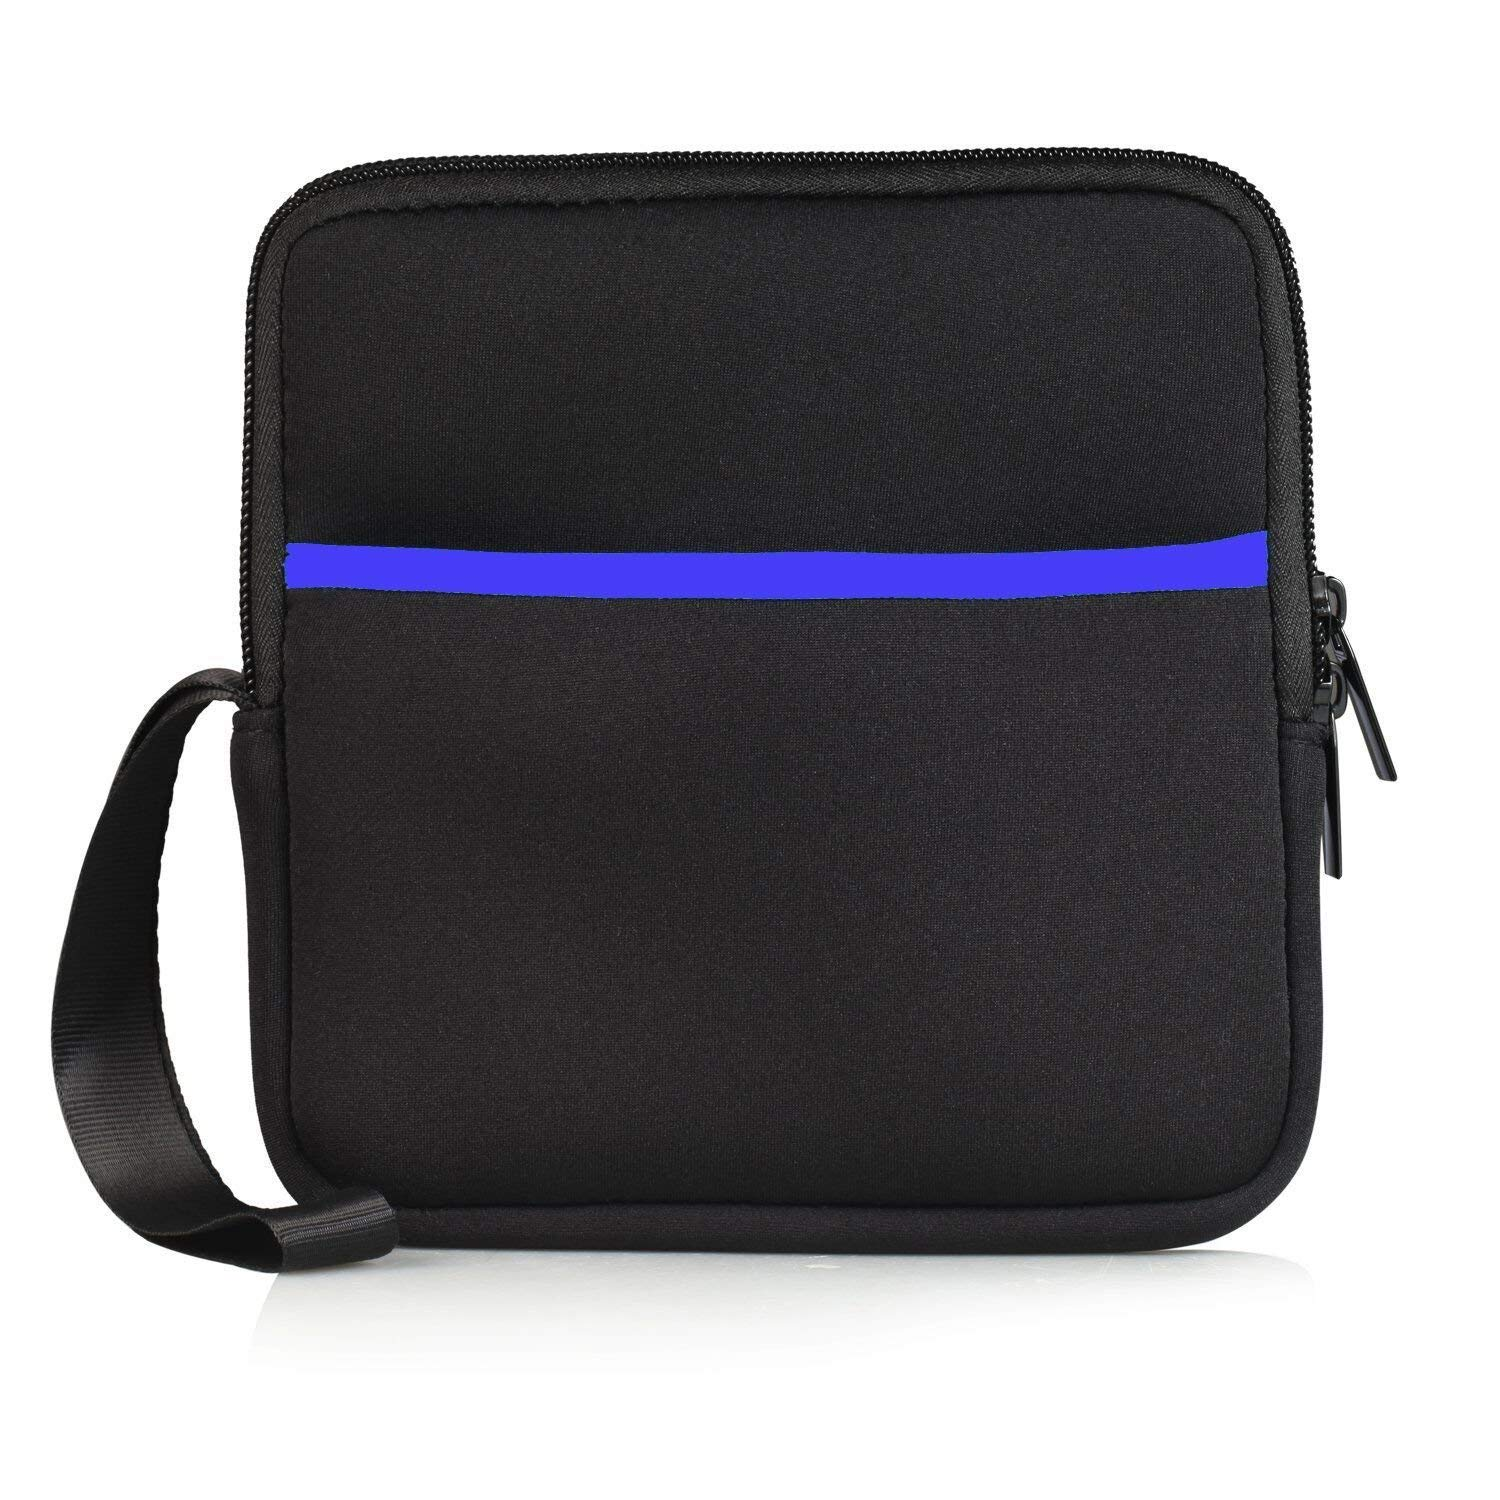 YAHEY External USB CD DVD Drive Protective Sleeve Shockproof Neoprene Carrying Sleeve Case Storage Pouch Bag with Extra Pocket Design for External Blu-Ray Drive Disc Player Hard Drive (Black) by YAHEY (Image #1)